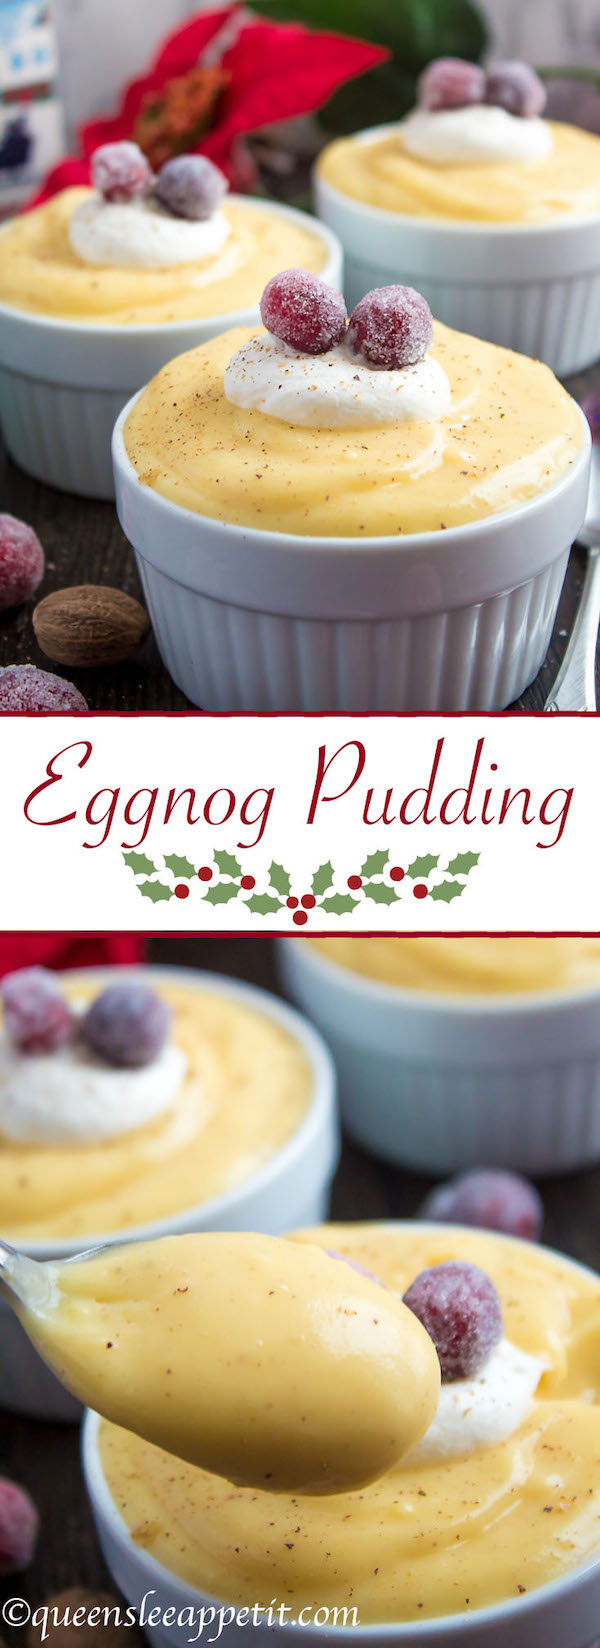 This sweet and creamy Homemade Eggnog Pudding is the best way to use up any extra eggnog from your holiday celebration! Top it off with sweetened whipped cream and sugared cranberries for a yummy and festive holiday treat!